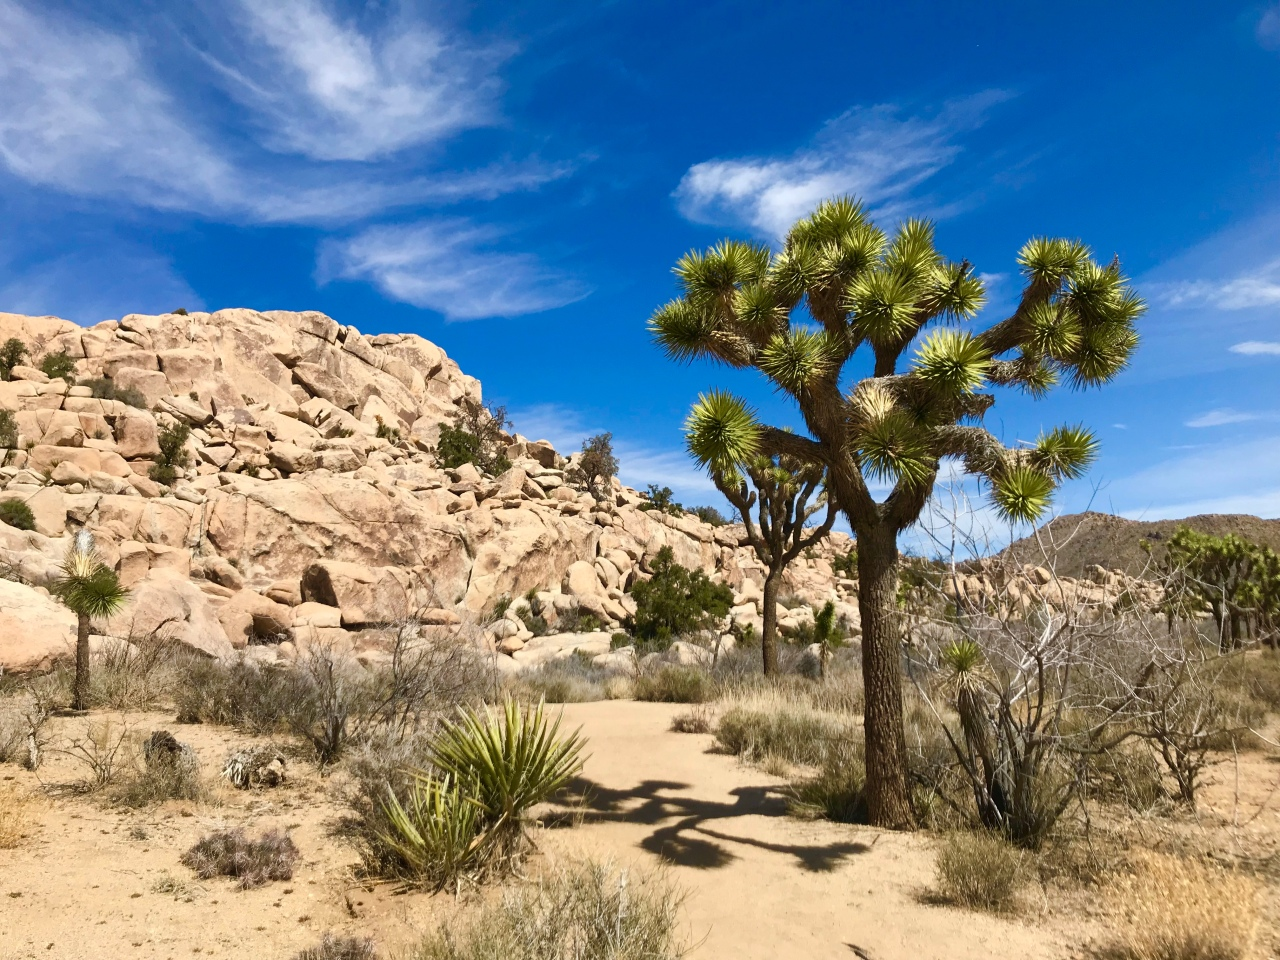 Joshua Tree National Park – California